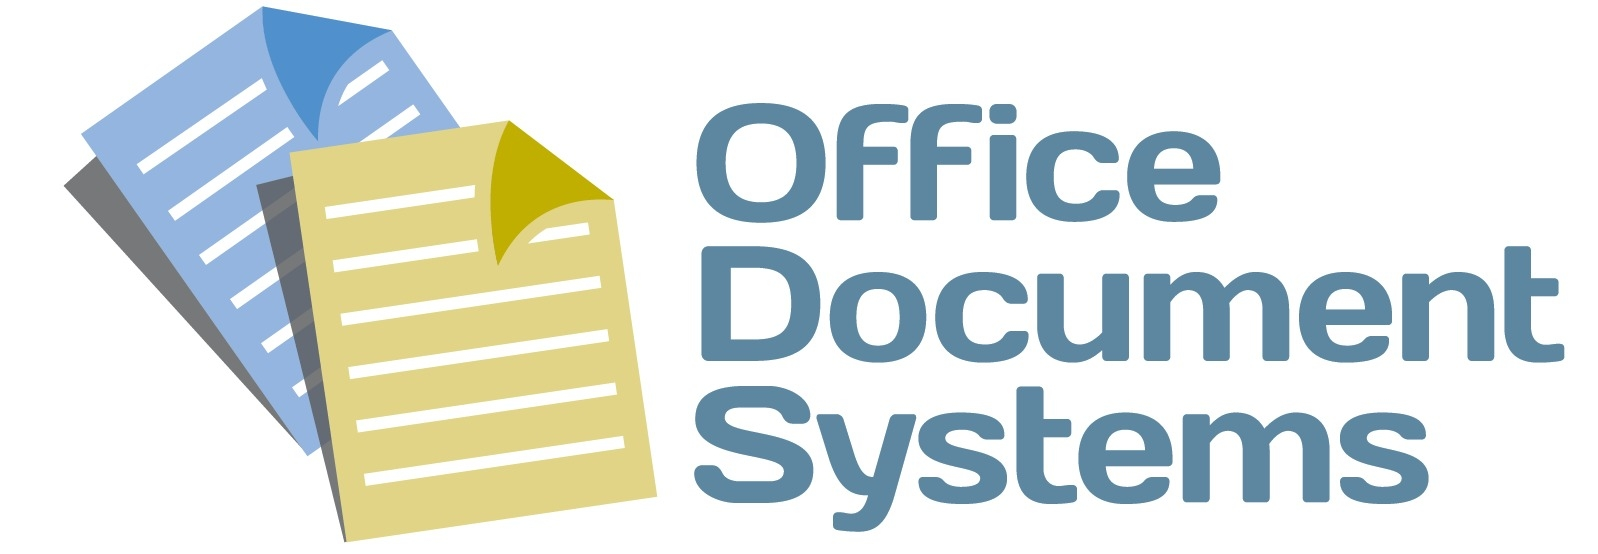 Office Document Systems